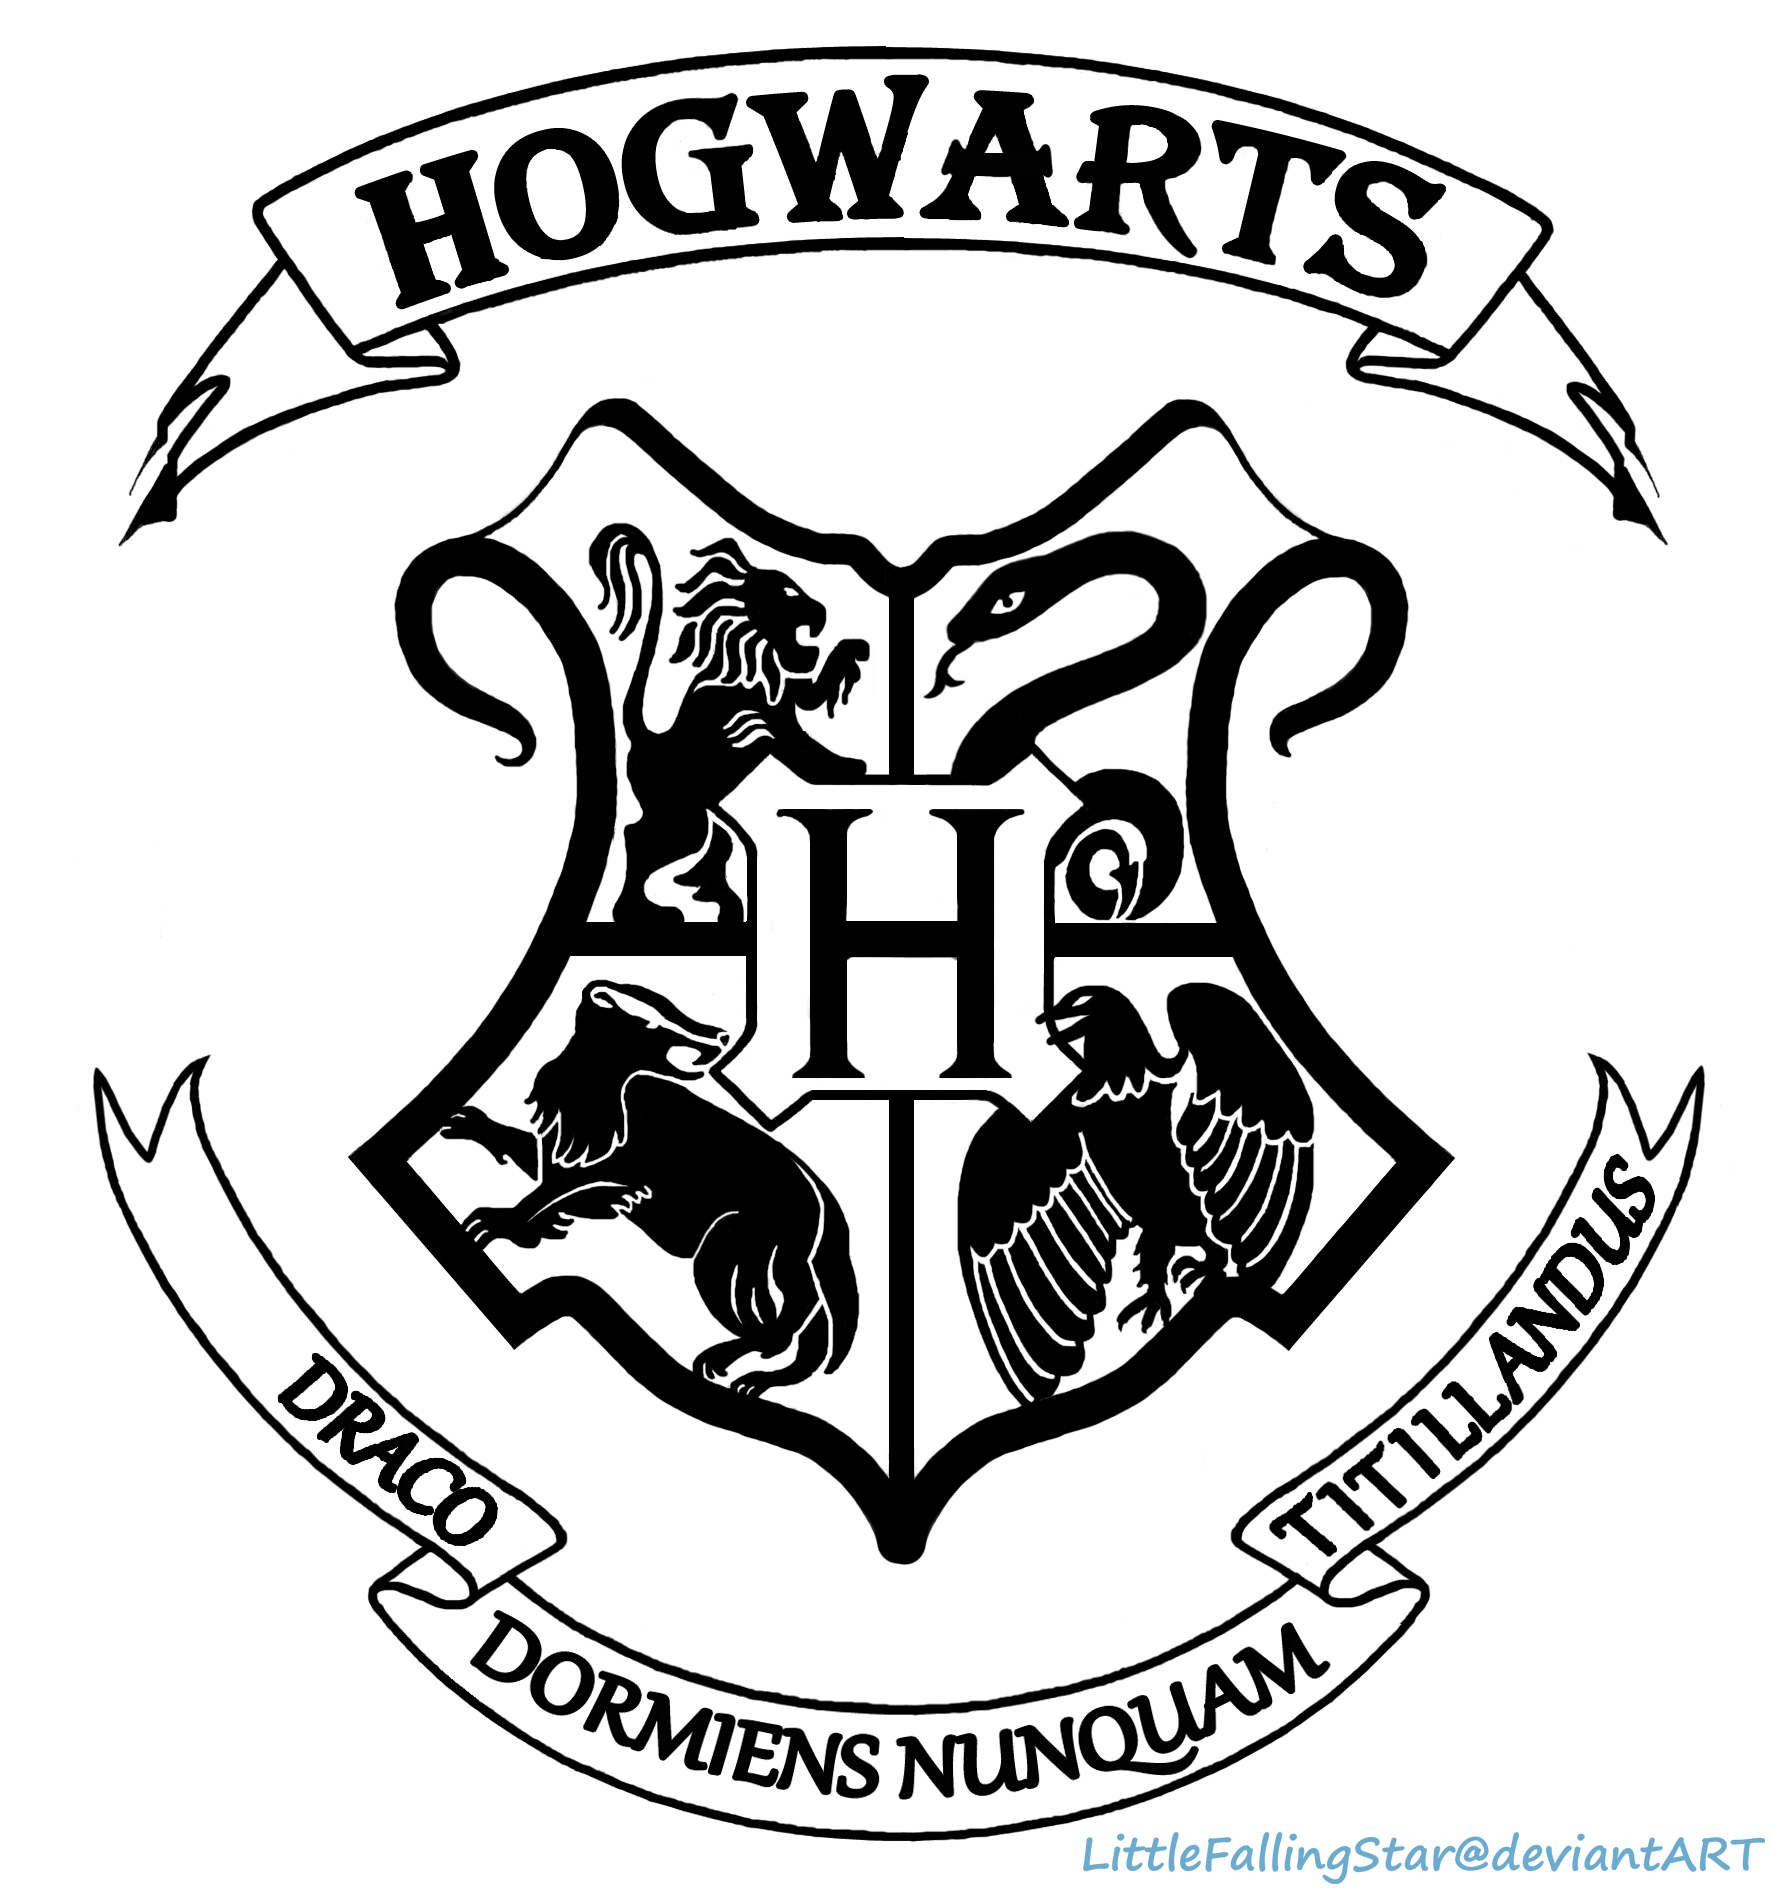 1094 Hogwarts free clipart.